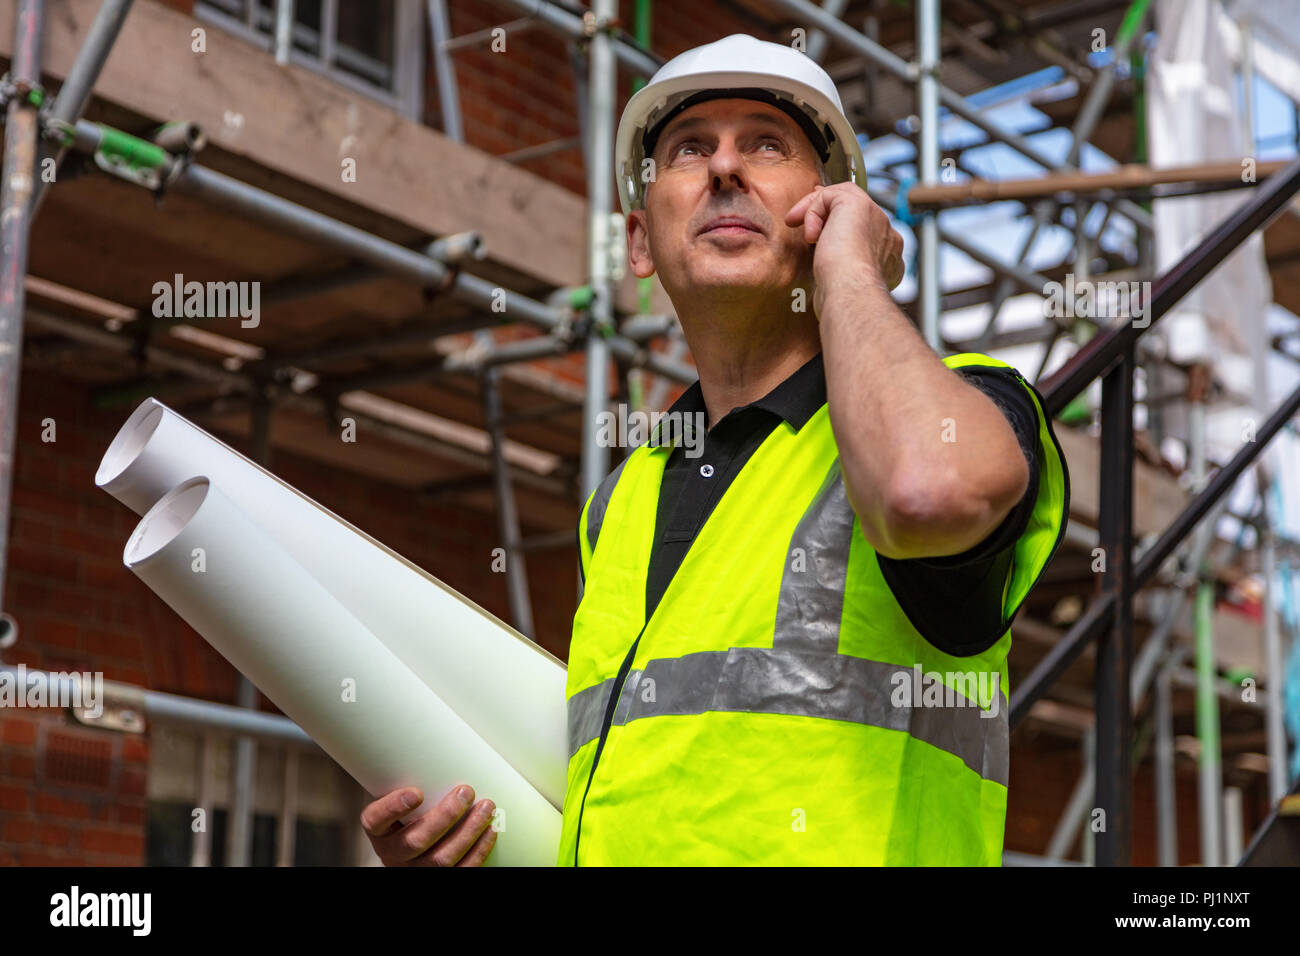 Male builder foreman, worker or architect on construction